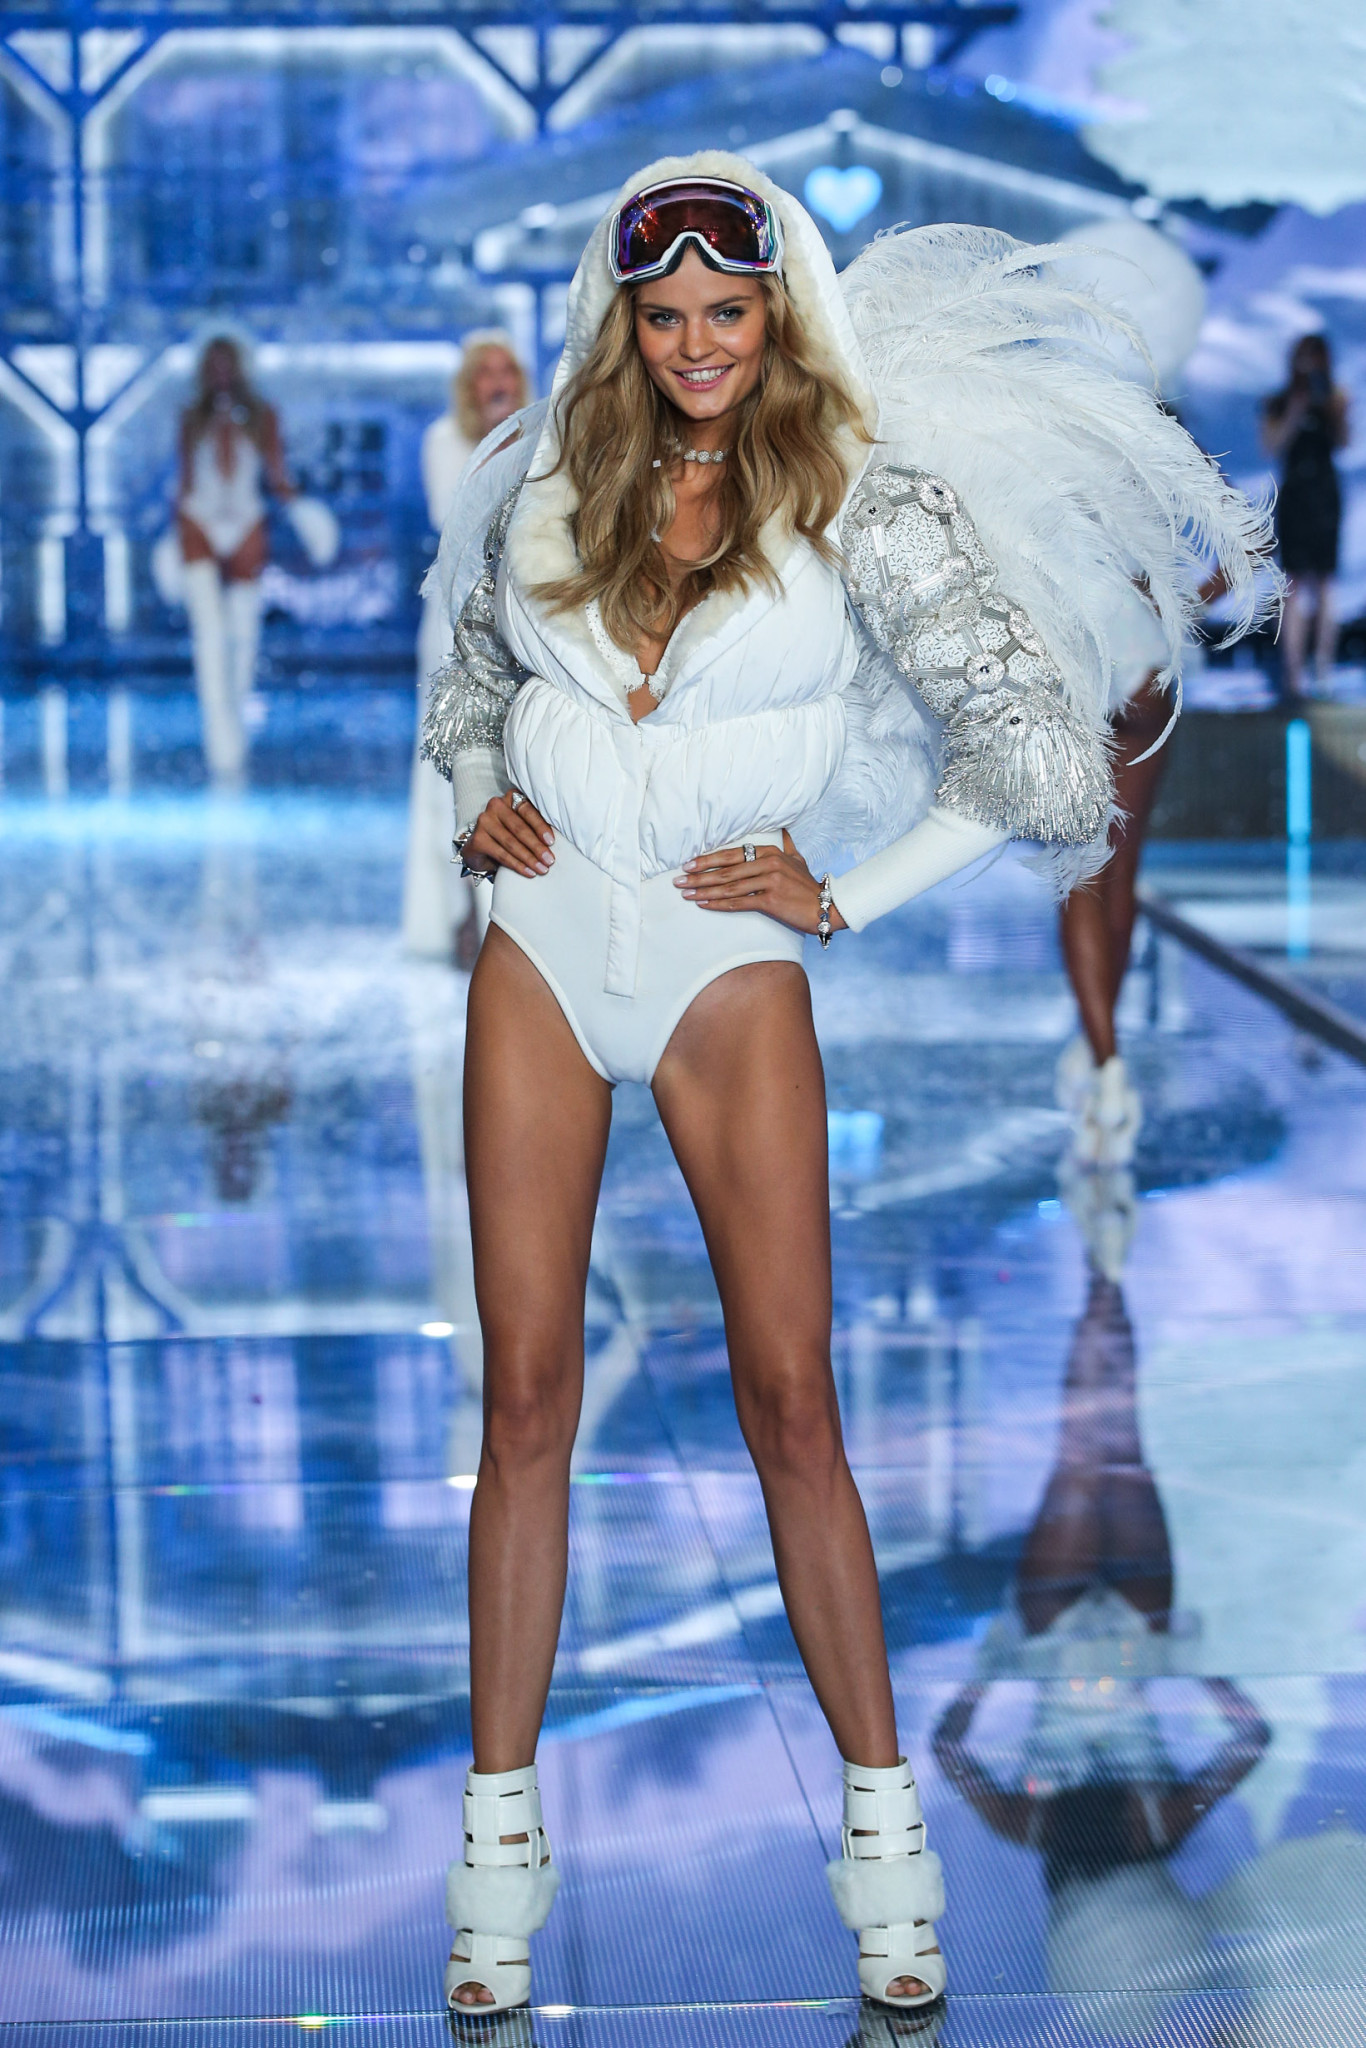 Model and new Angel Kate Grigorieva walks the runway at the 2015 Victoria's Secret Fashion Show in New York City on November 10th, 2015